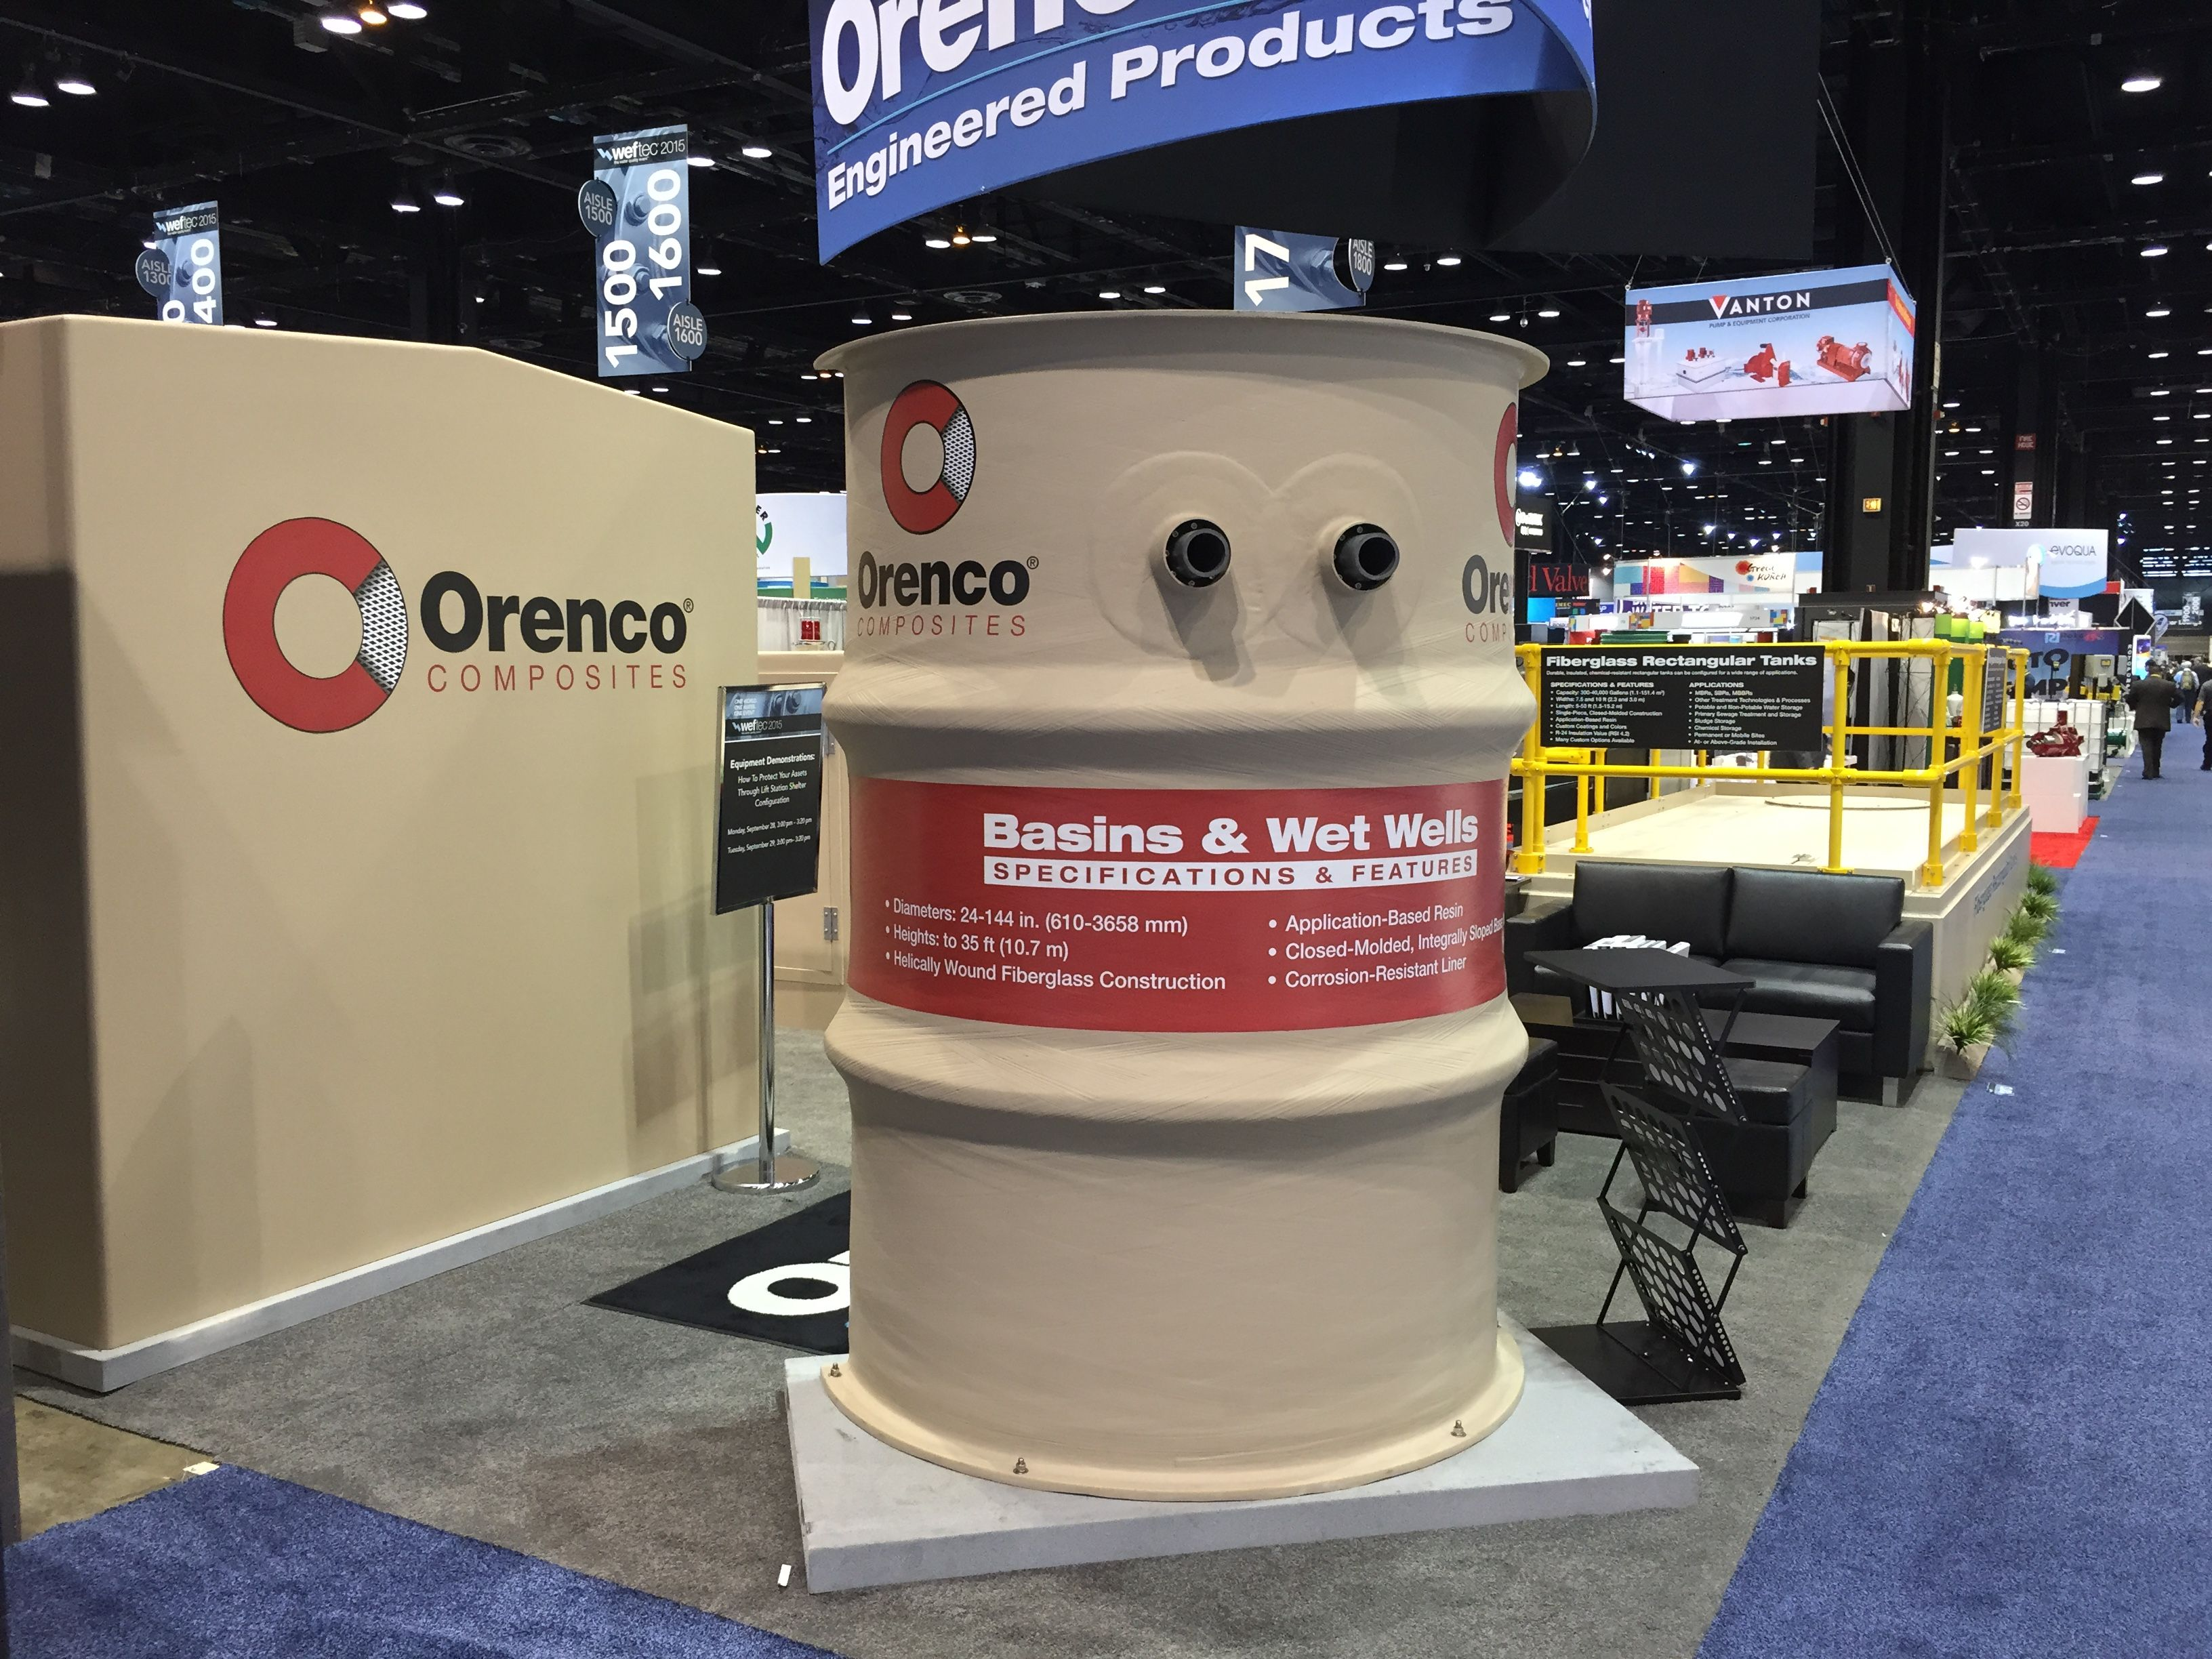 Weftec 2015 Orenco Composites Takes Pride In Producing High Quality Helically Wound Fiberglass Basins An Array Of Optio Technology Solutions Canning Trading